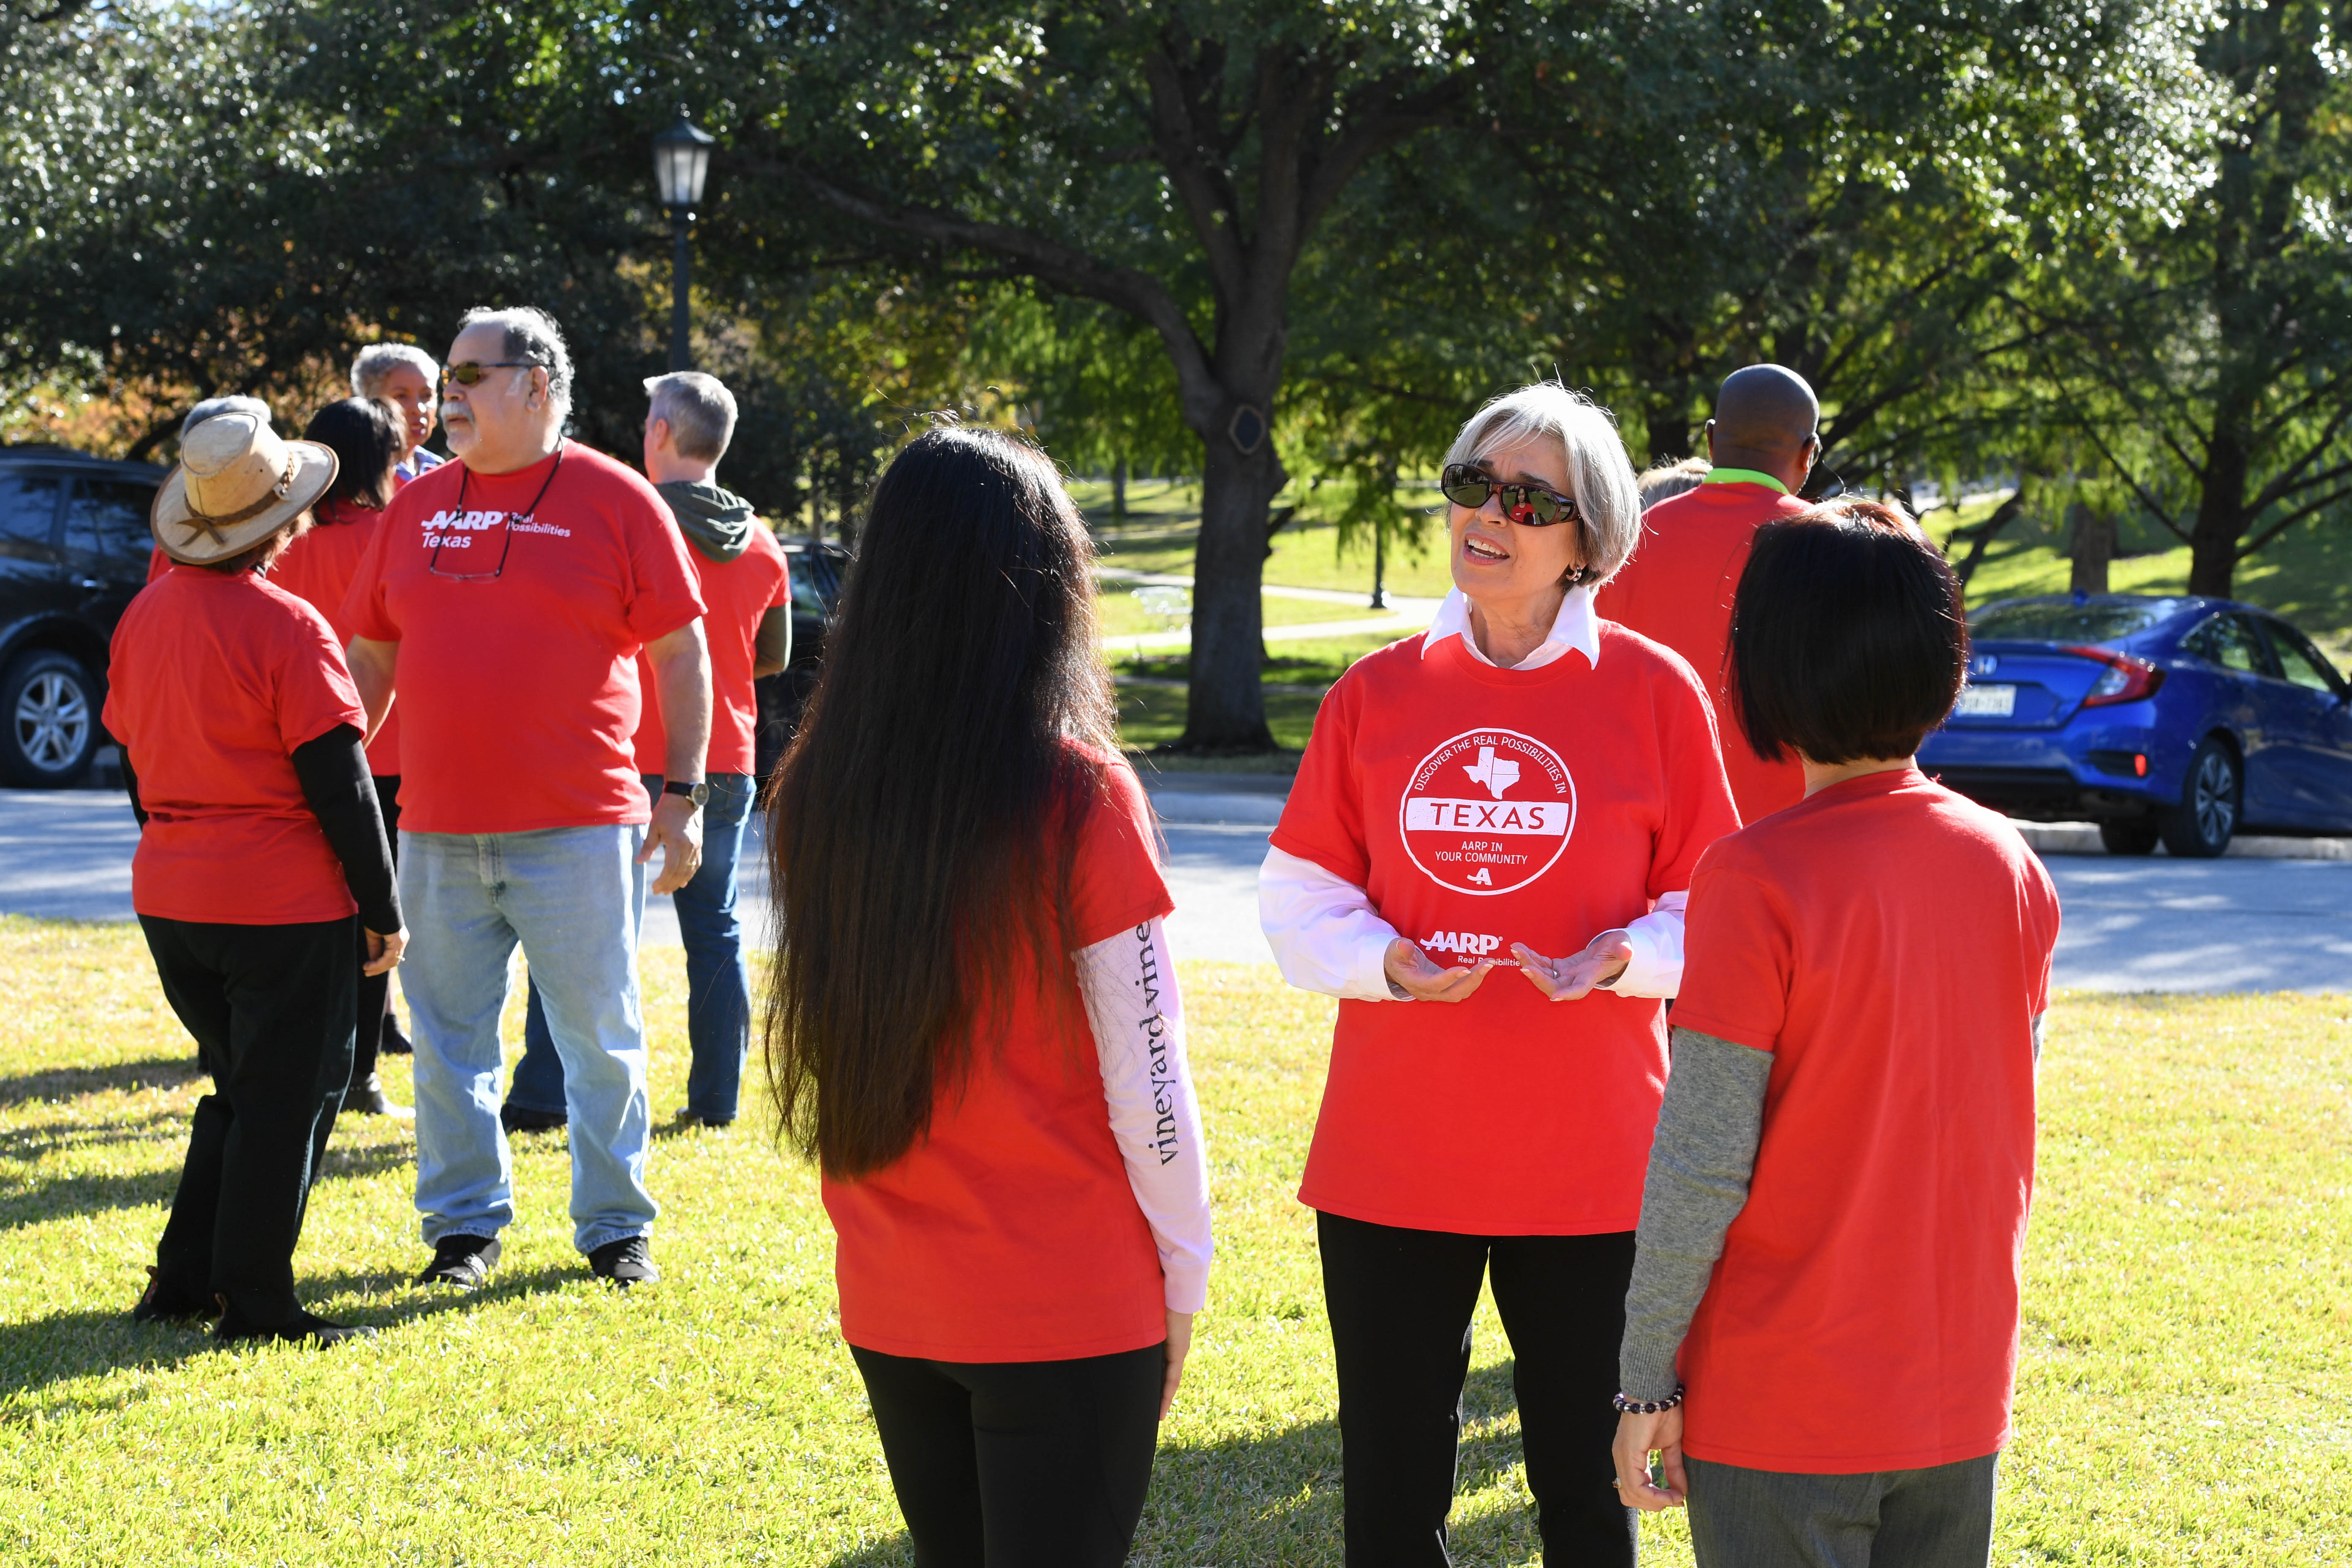 Join the AARP Dallas-Fort Worth Volunteer Team